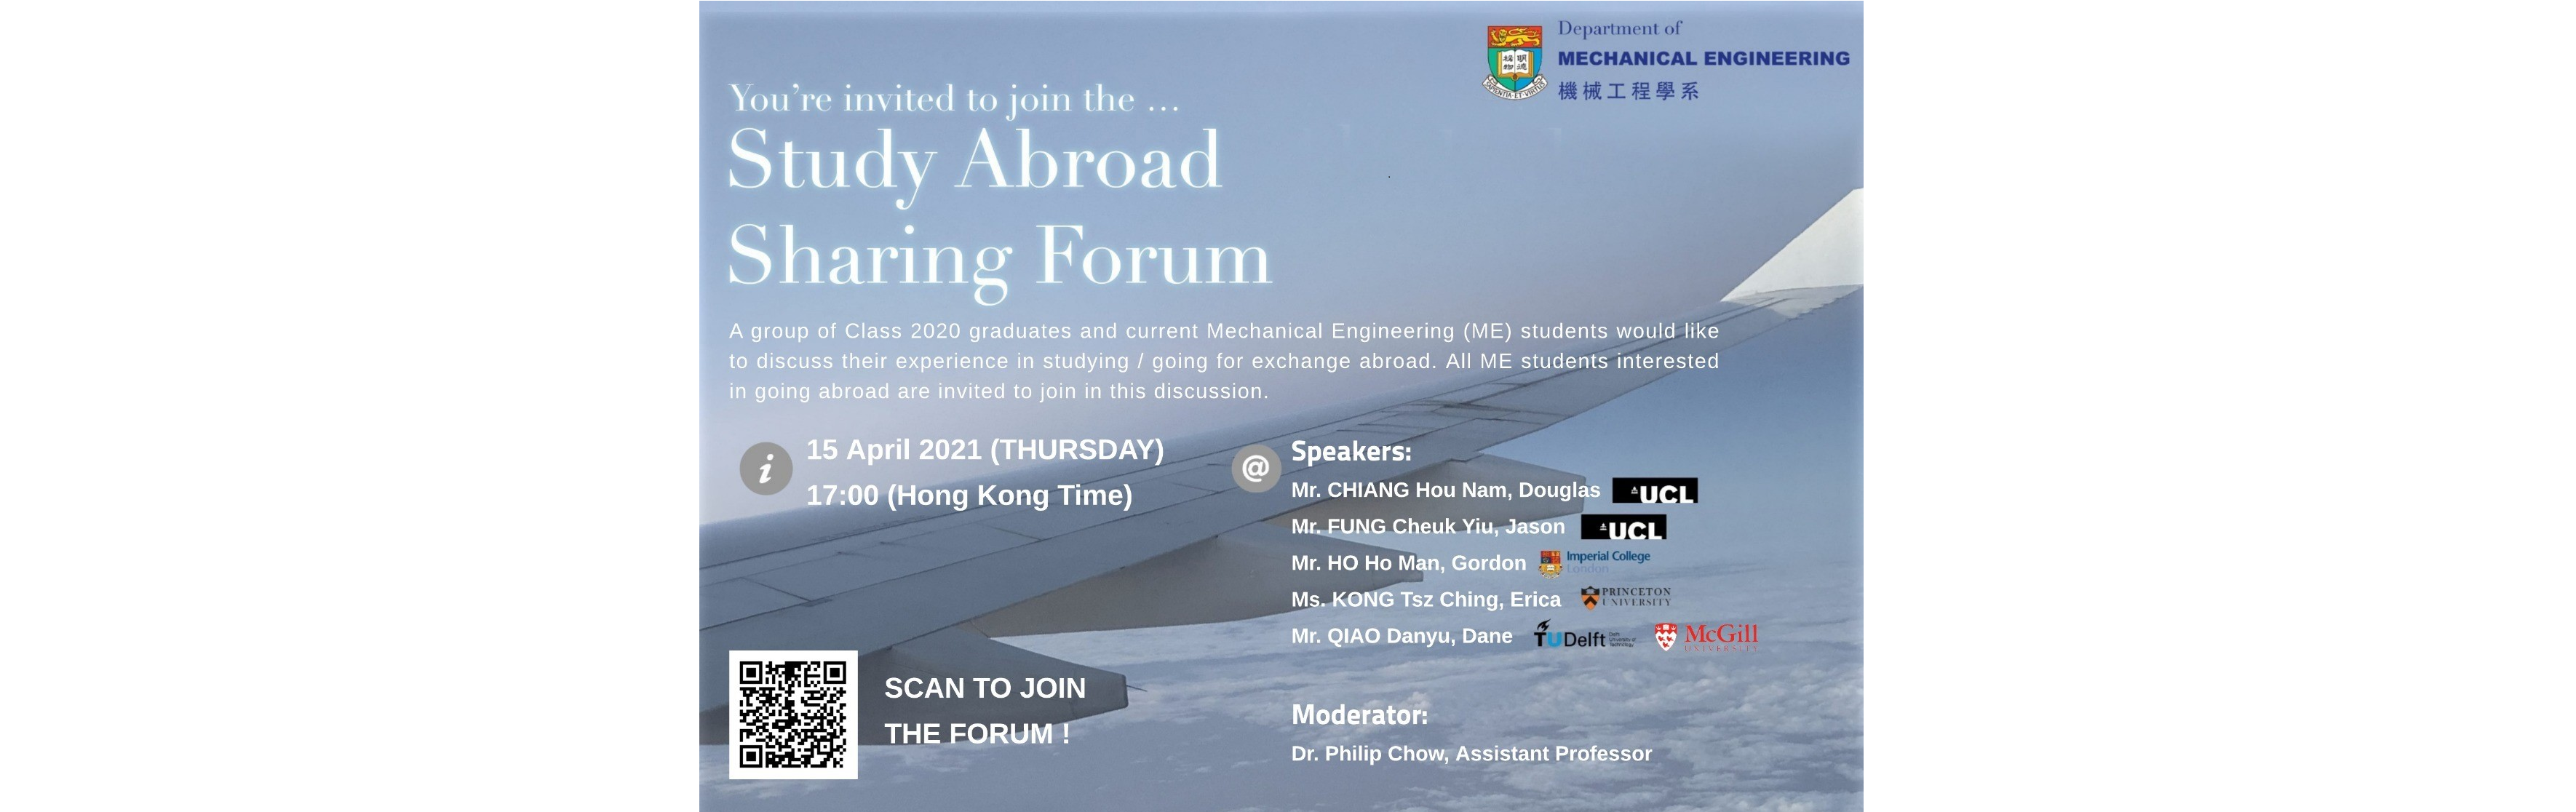 Study Abroad Sharing Forum_banner